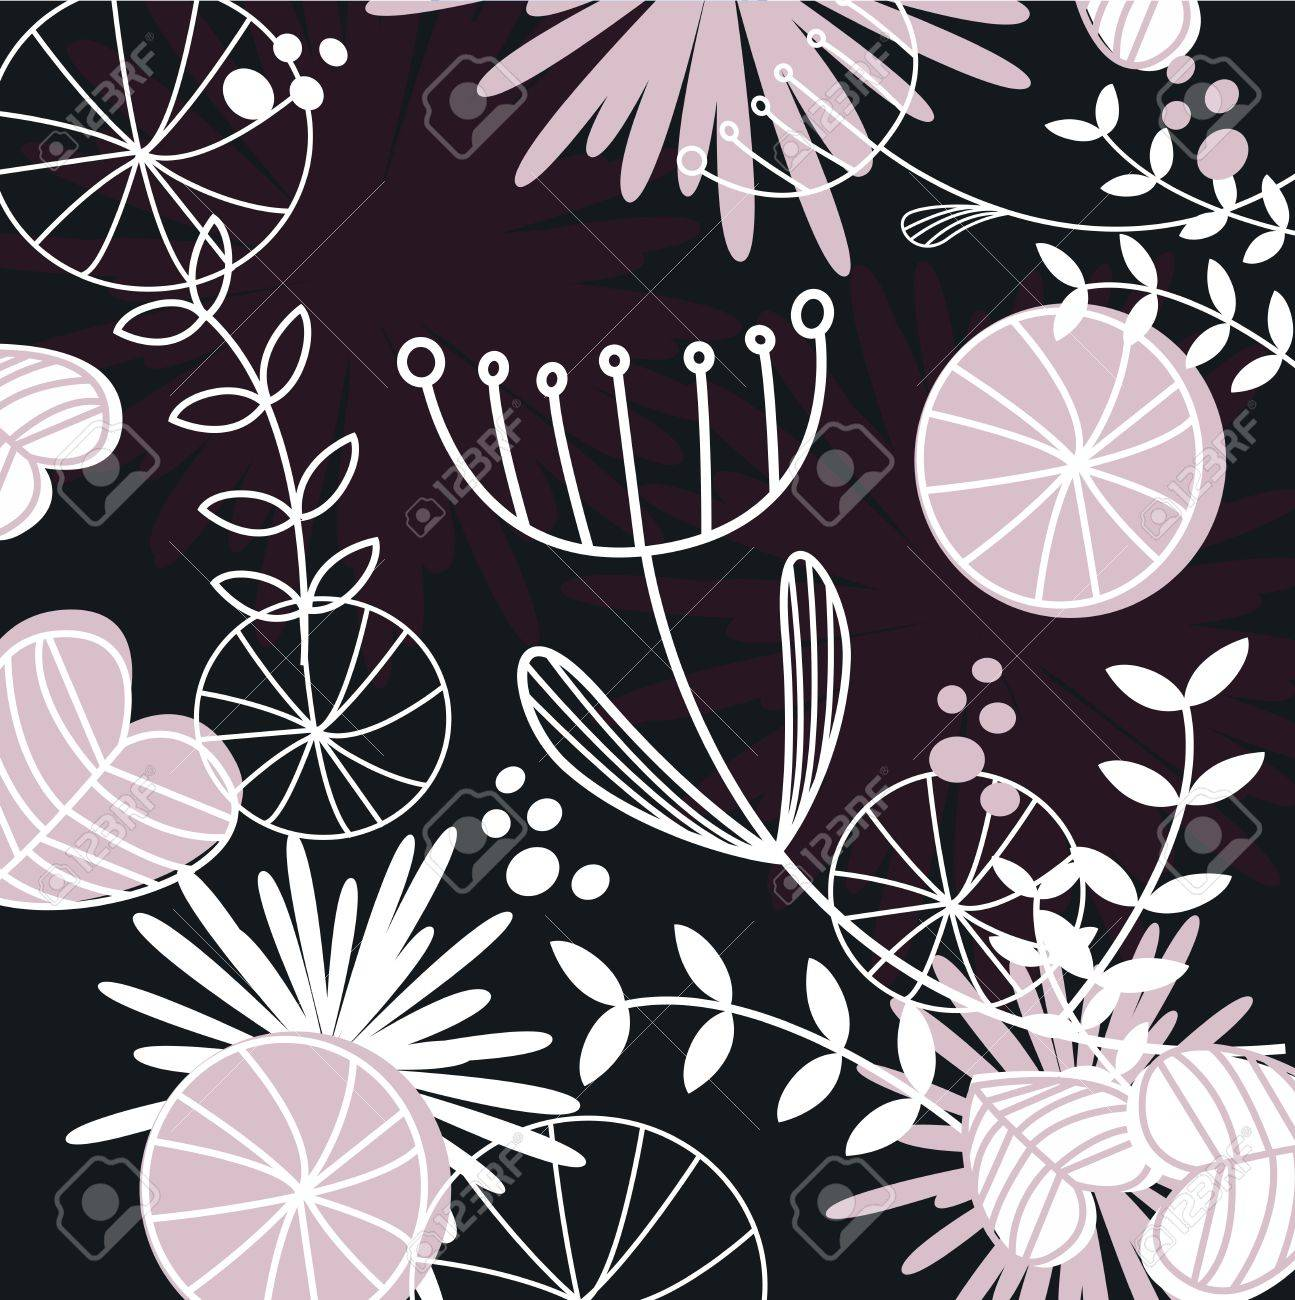 Retro background with vintage flowers - vector Illustration. Stock Vector - 9474161